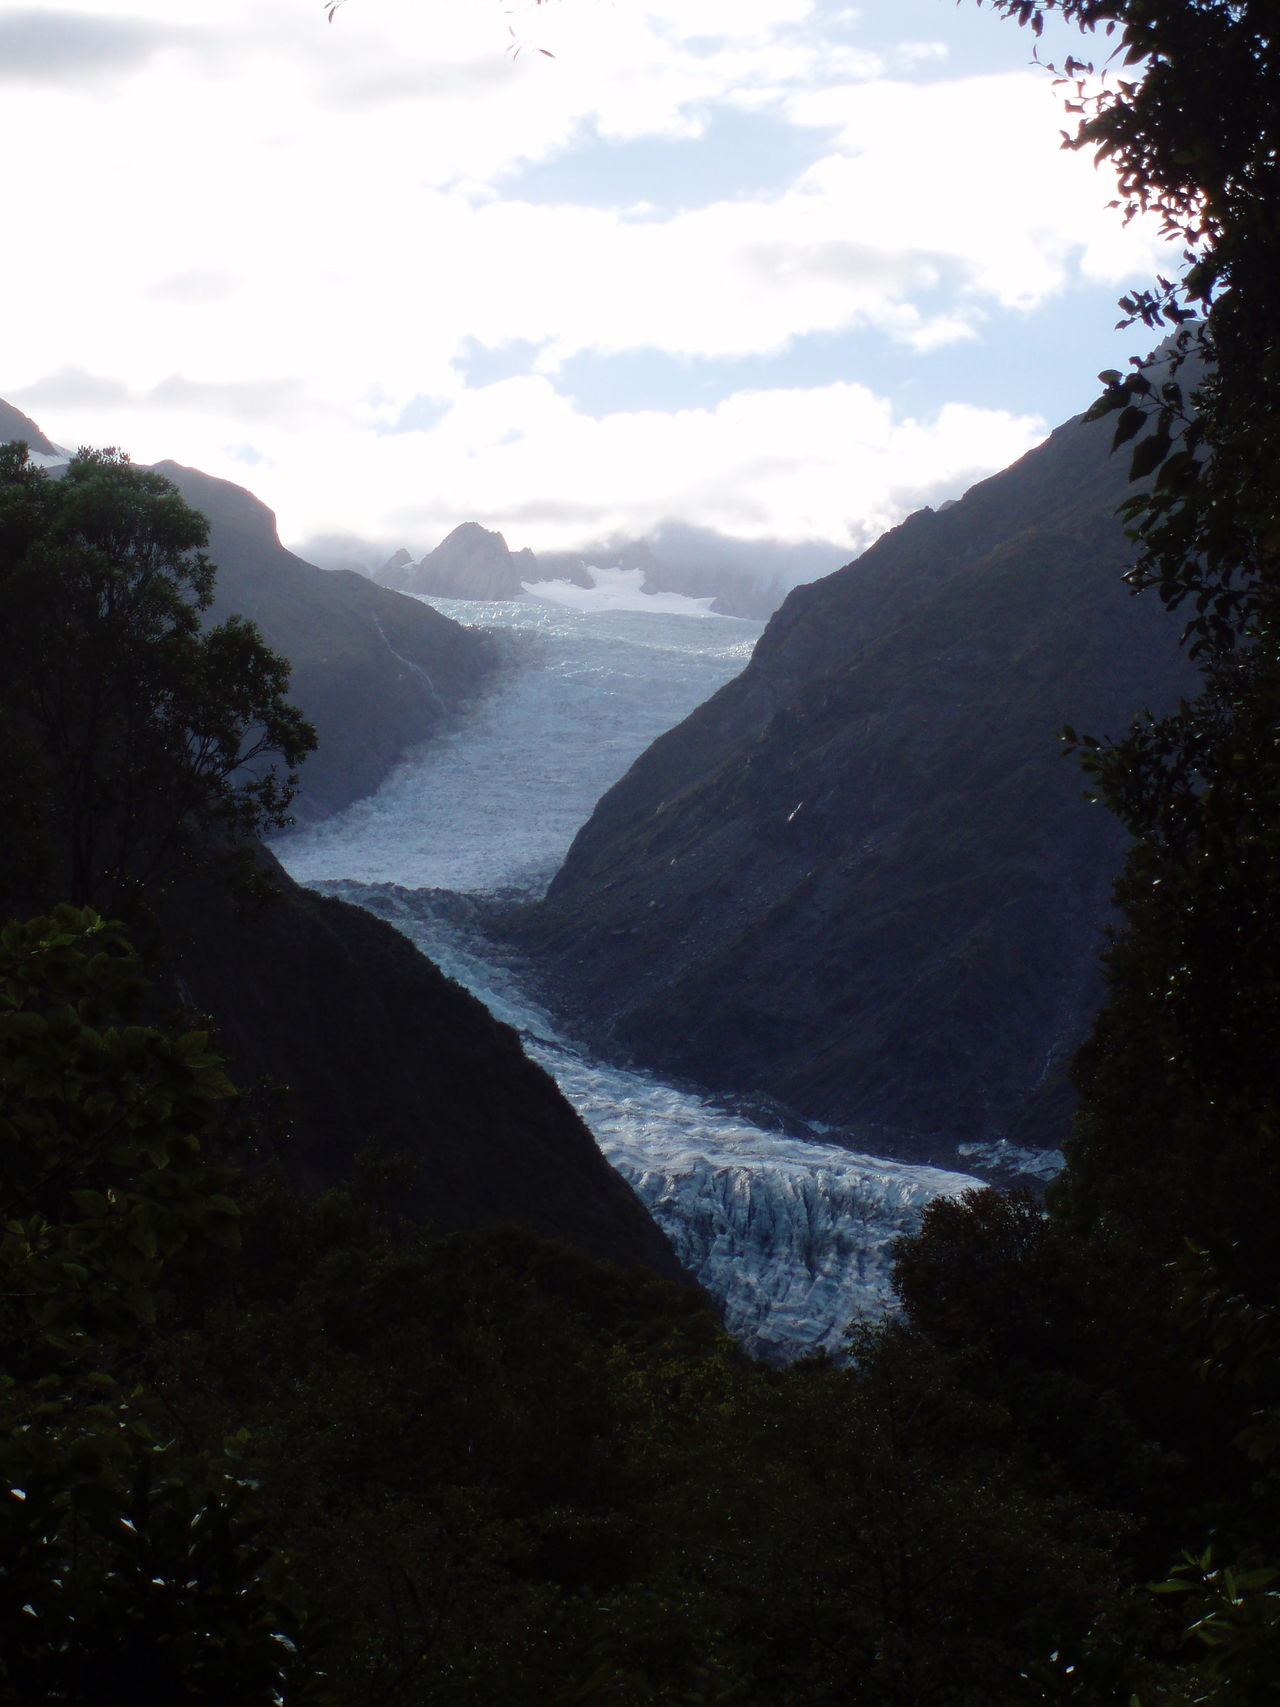 Beauty In Nature Day Fox Glacier Landscape Mountain Nature No People Outdoors Scenics Sky Tranquil Scene Tranquility Tree Water